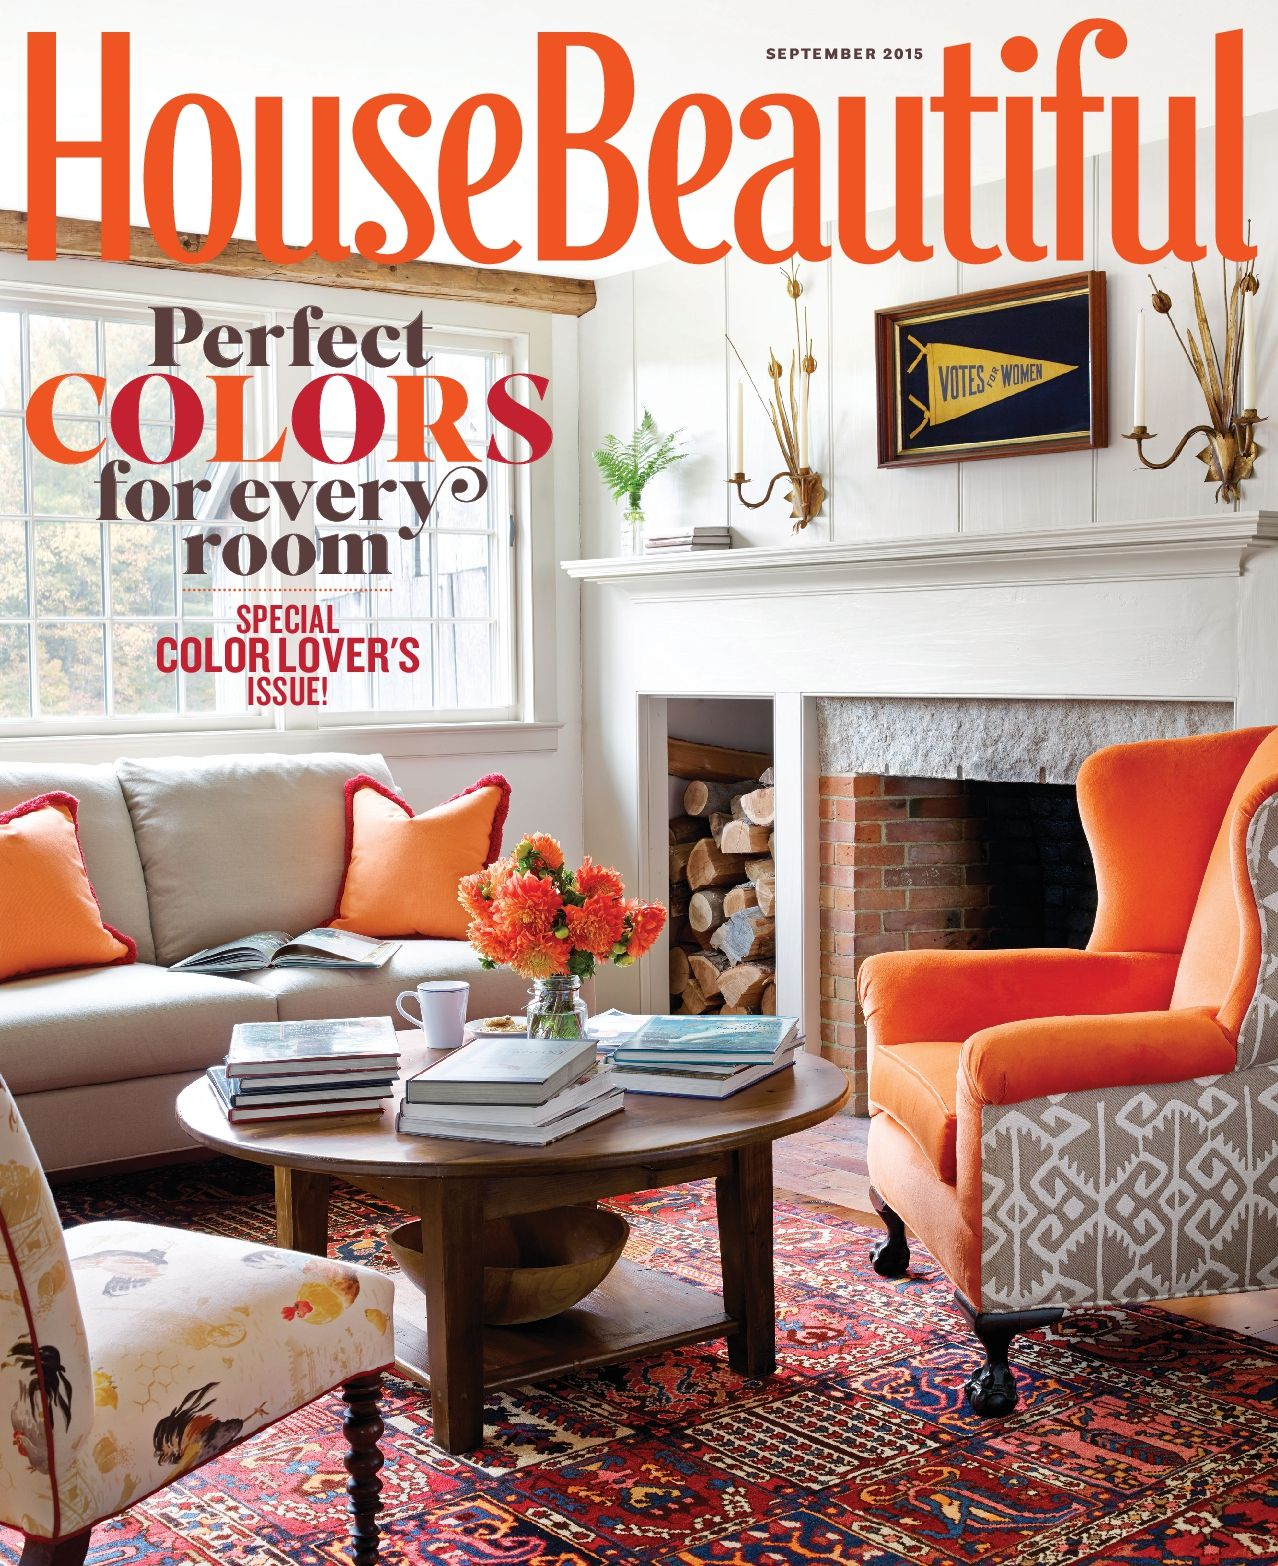 House Beautiful September 2015 House Beautiful  Shopping Resources